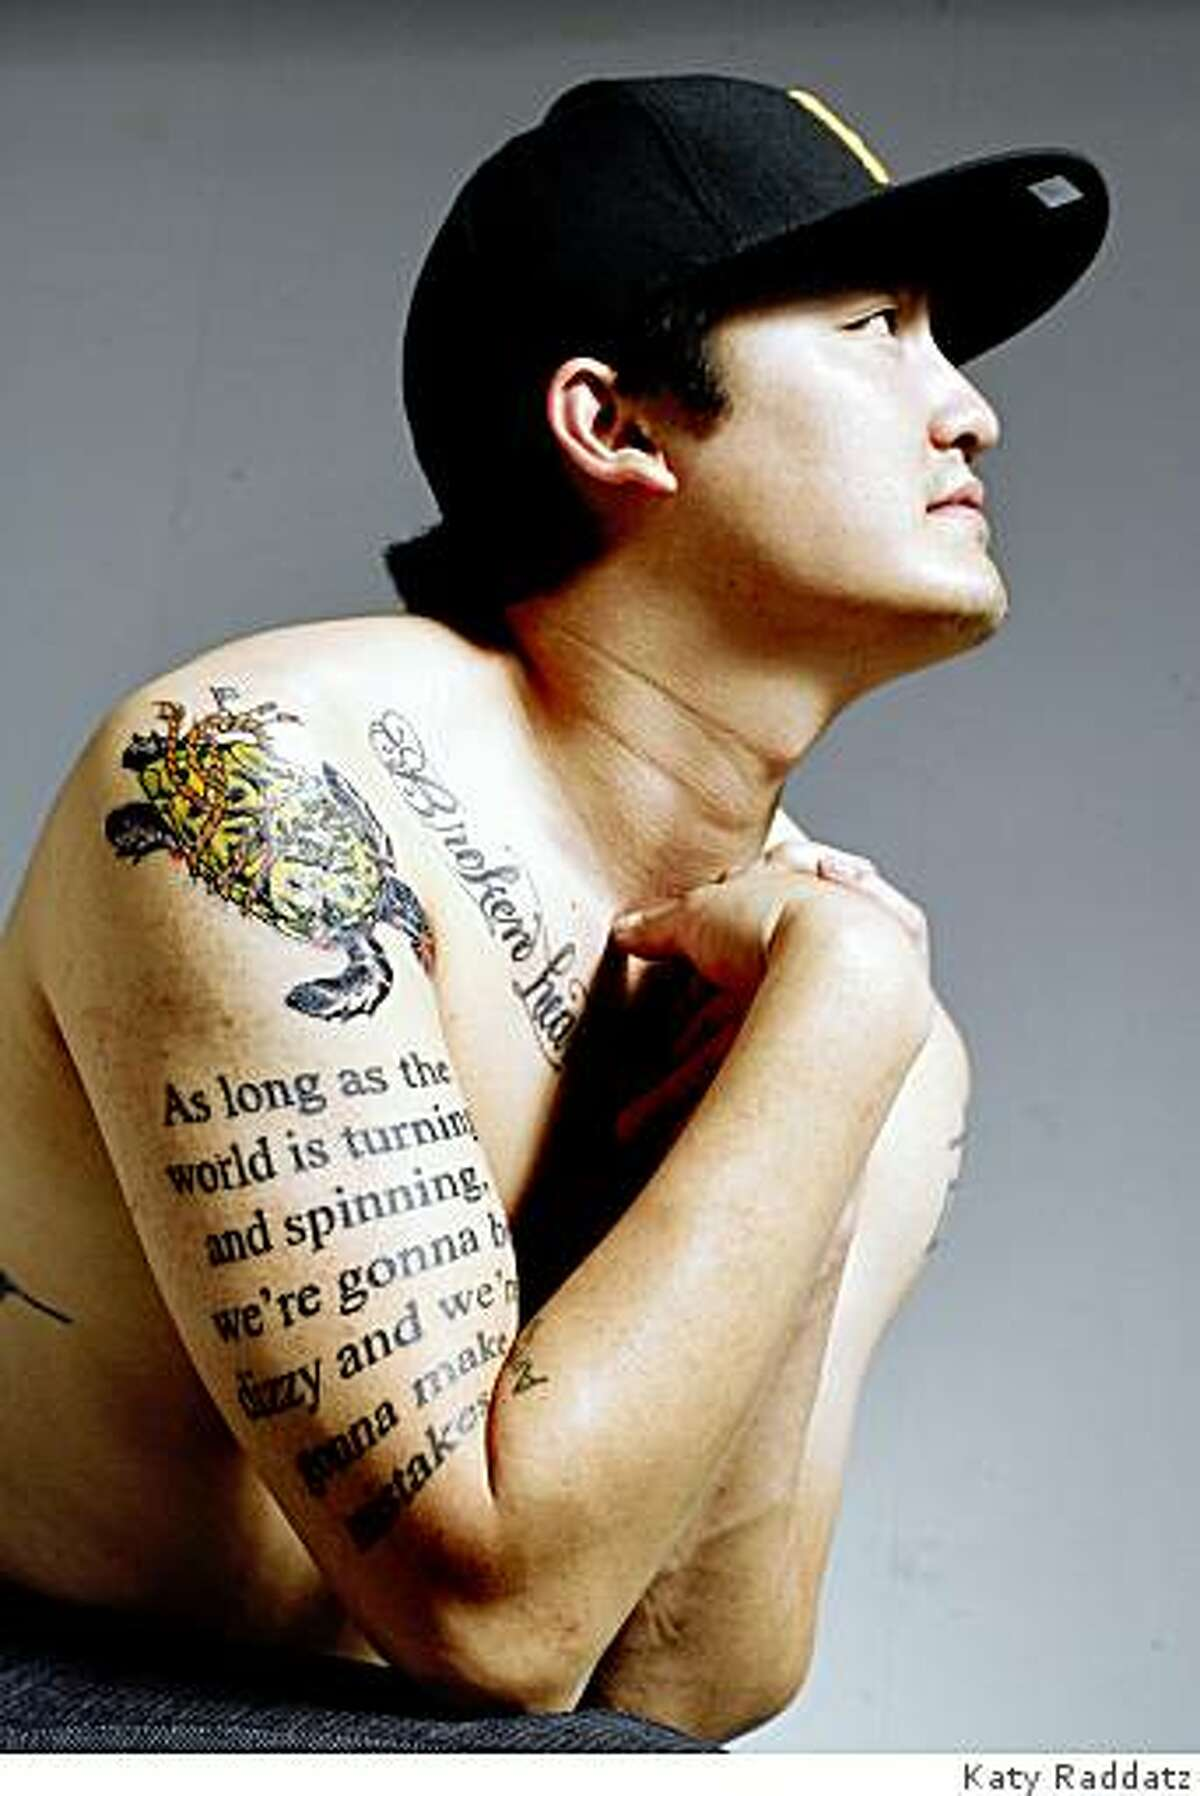 Jon Woo has many tattoos, including a script tattoo on his right upper arm that is a quote from Mel Brooks: